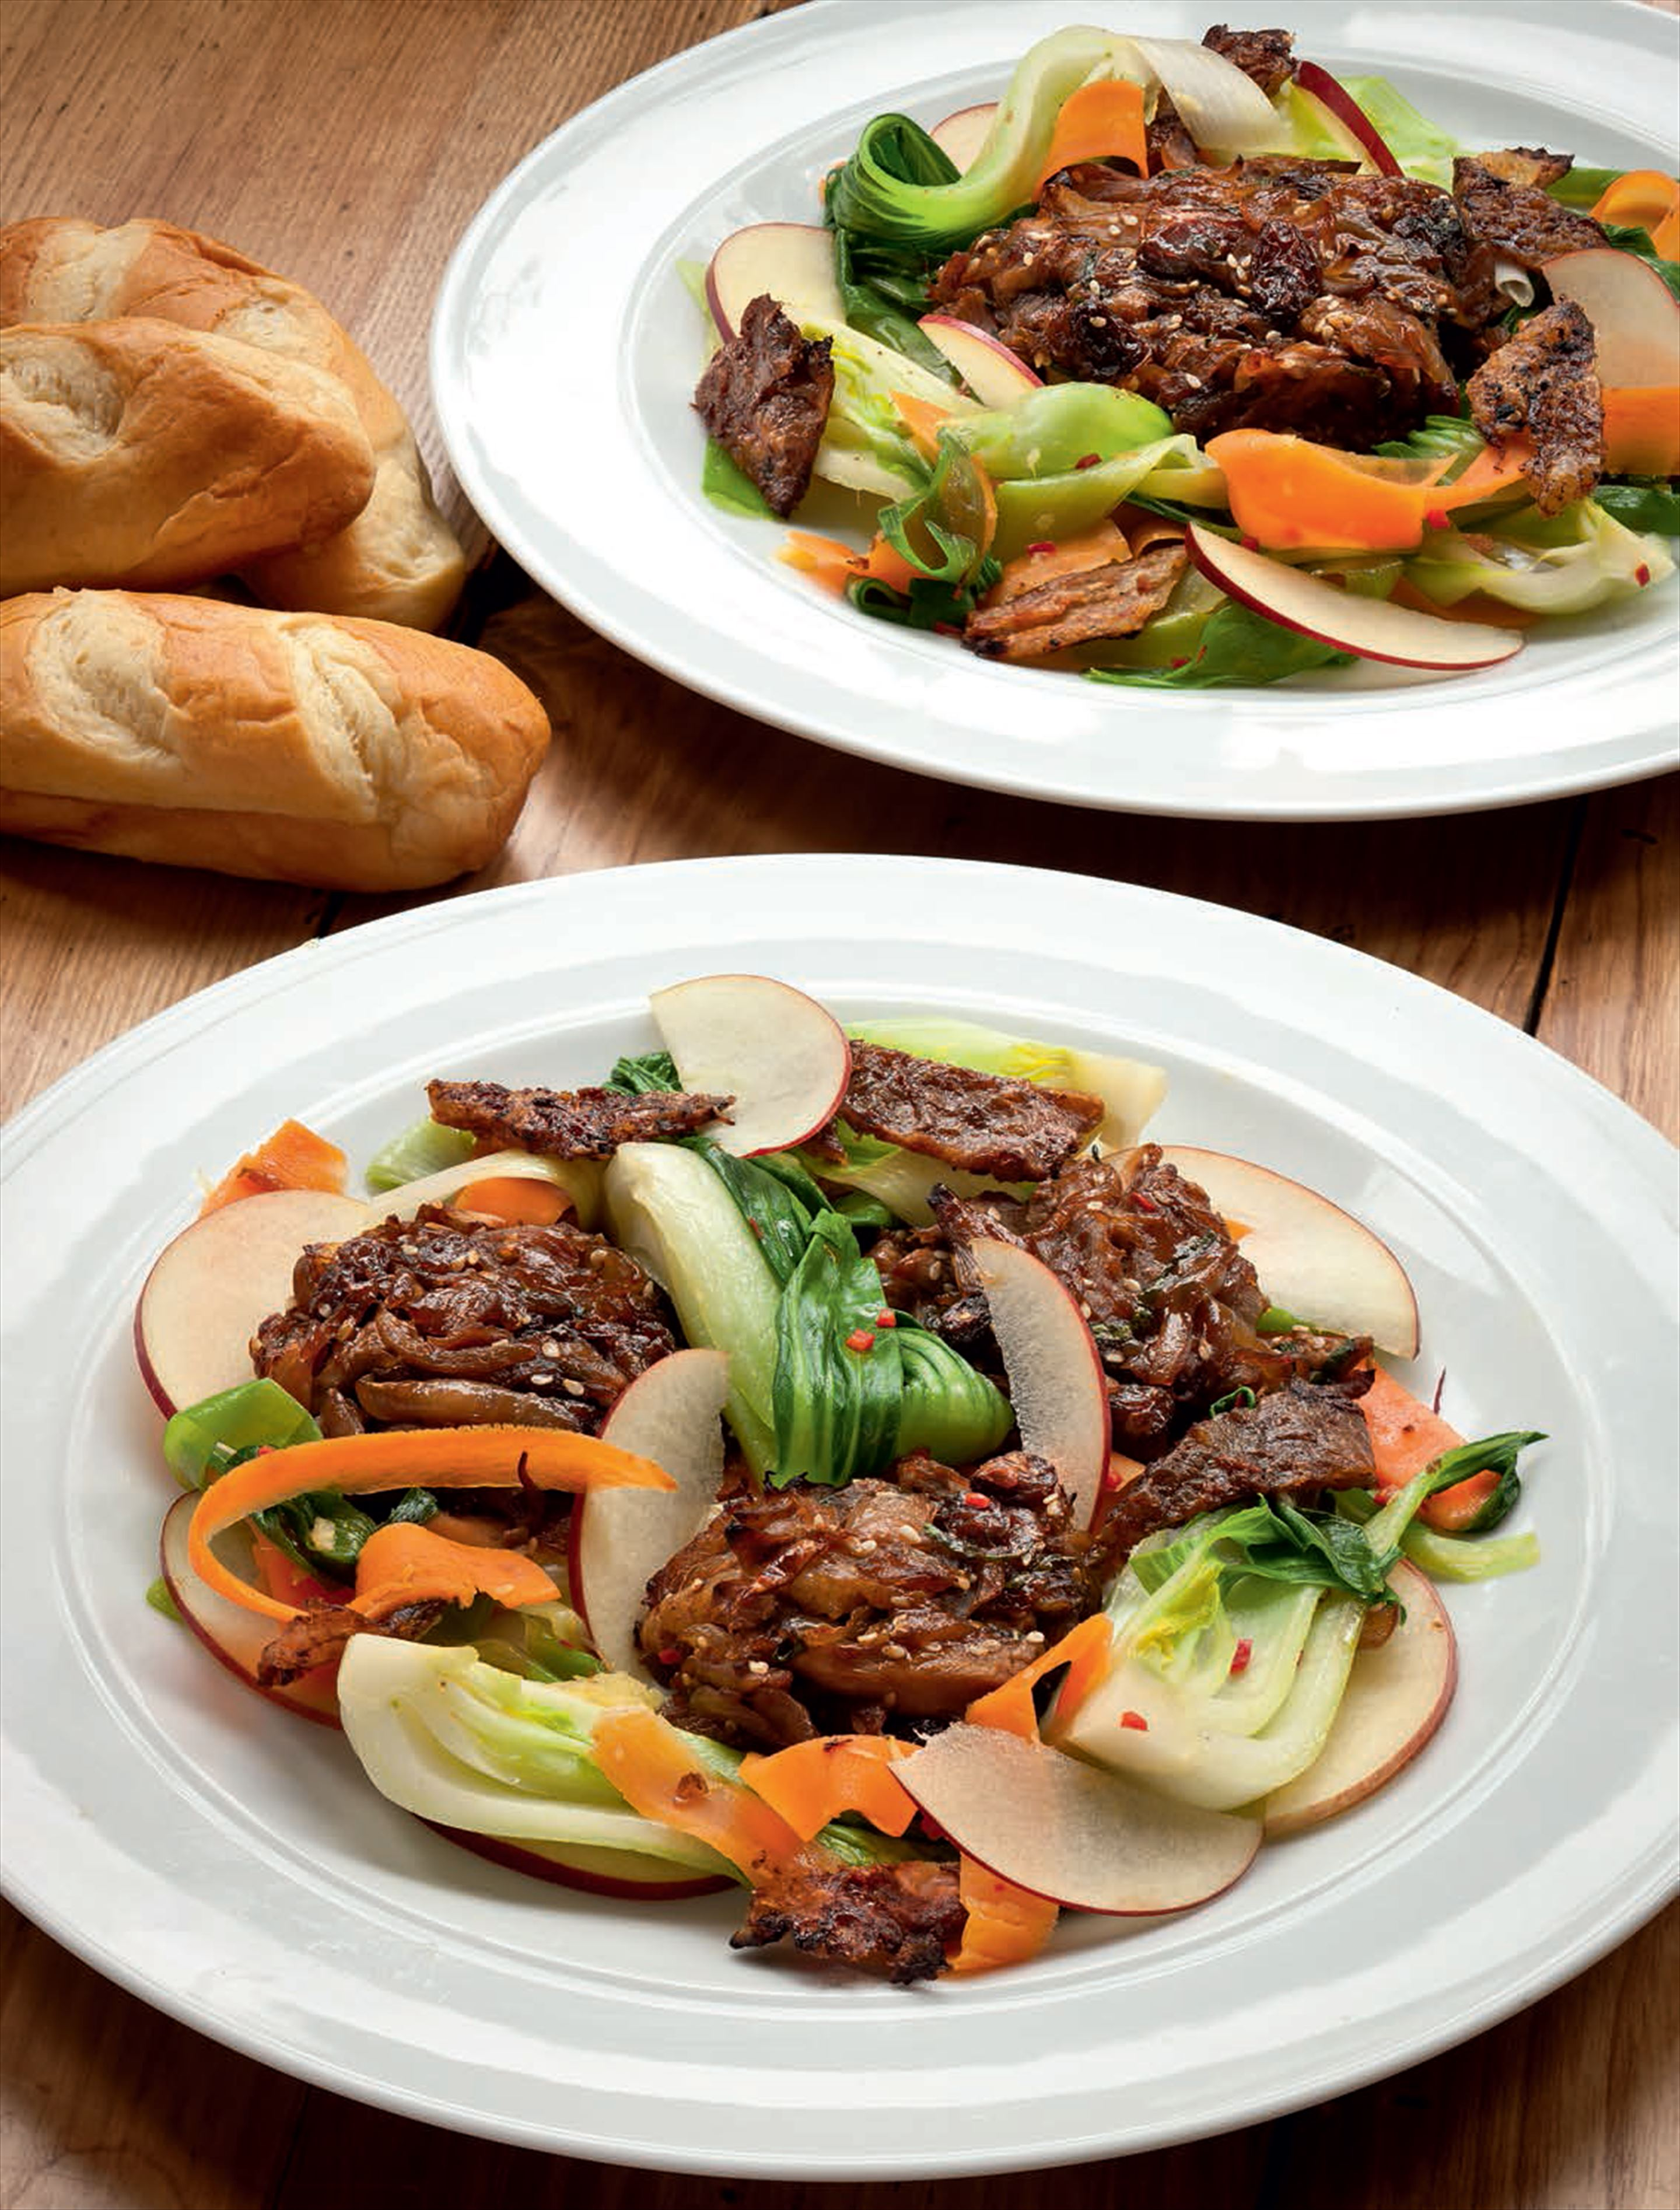 Duck patties with hoisin sauce & stir-fried vegetables